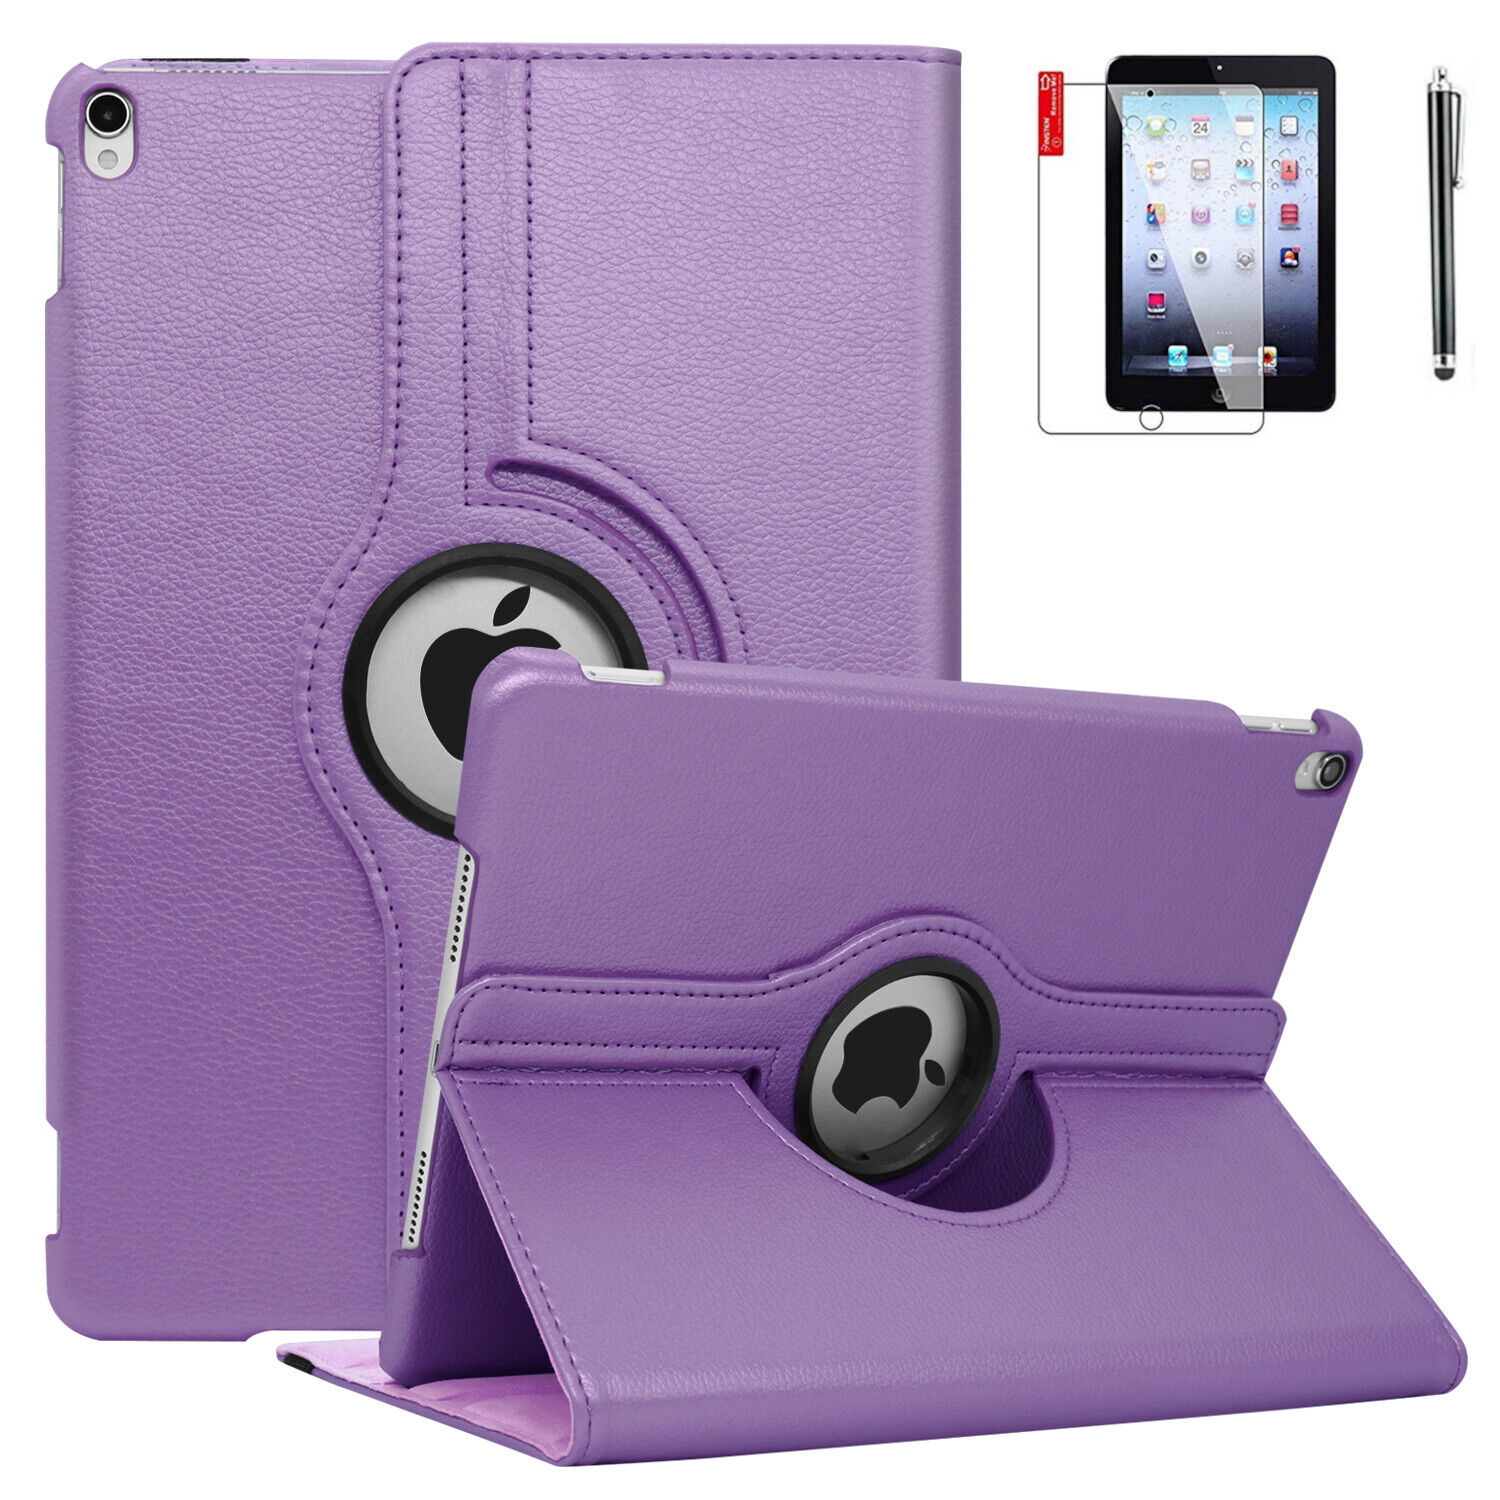 360 Rotating Leather Folio Case Cover Stand For iPad Mini 4t